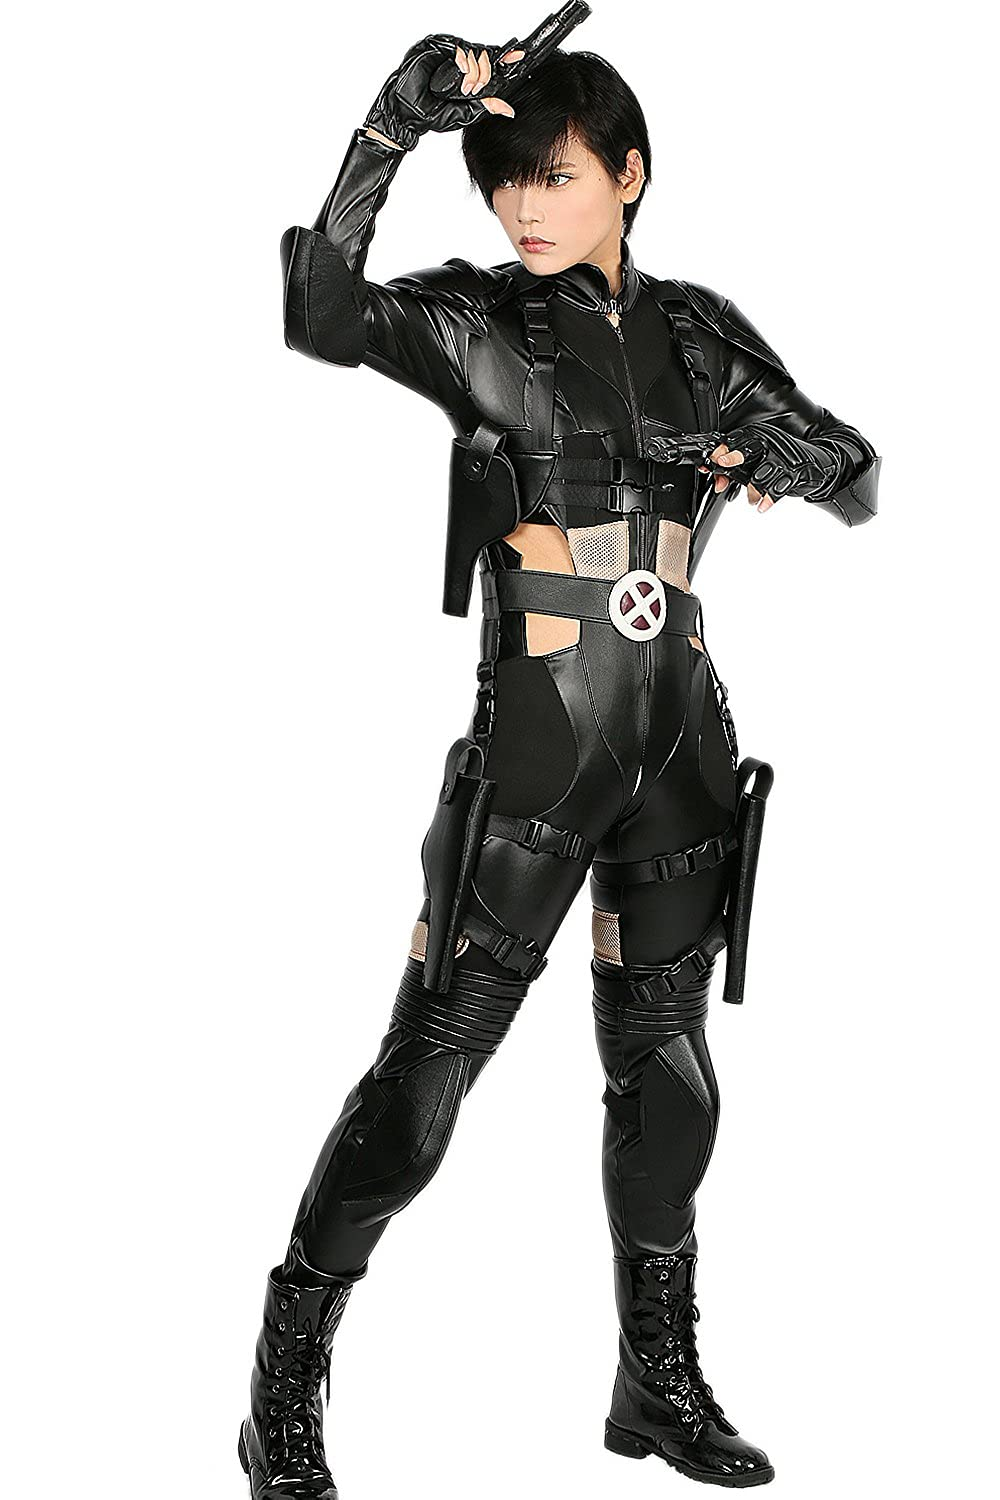 Amazon.com: Hotwinds Domino Costume Cosplay Outfit Bodysuit Suit Black PU Leather: Clothing